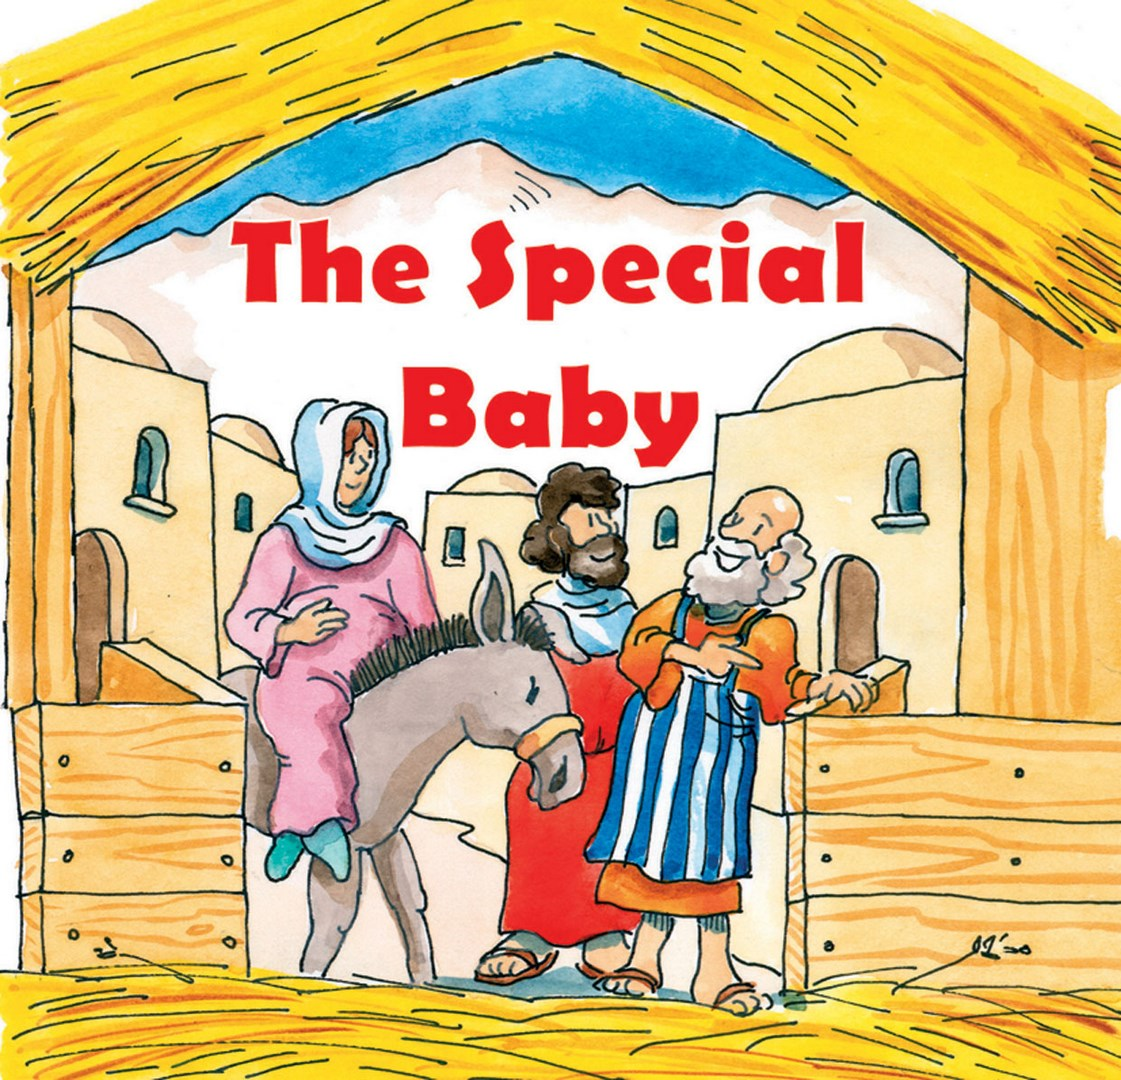 The Special Baby